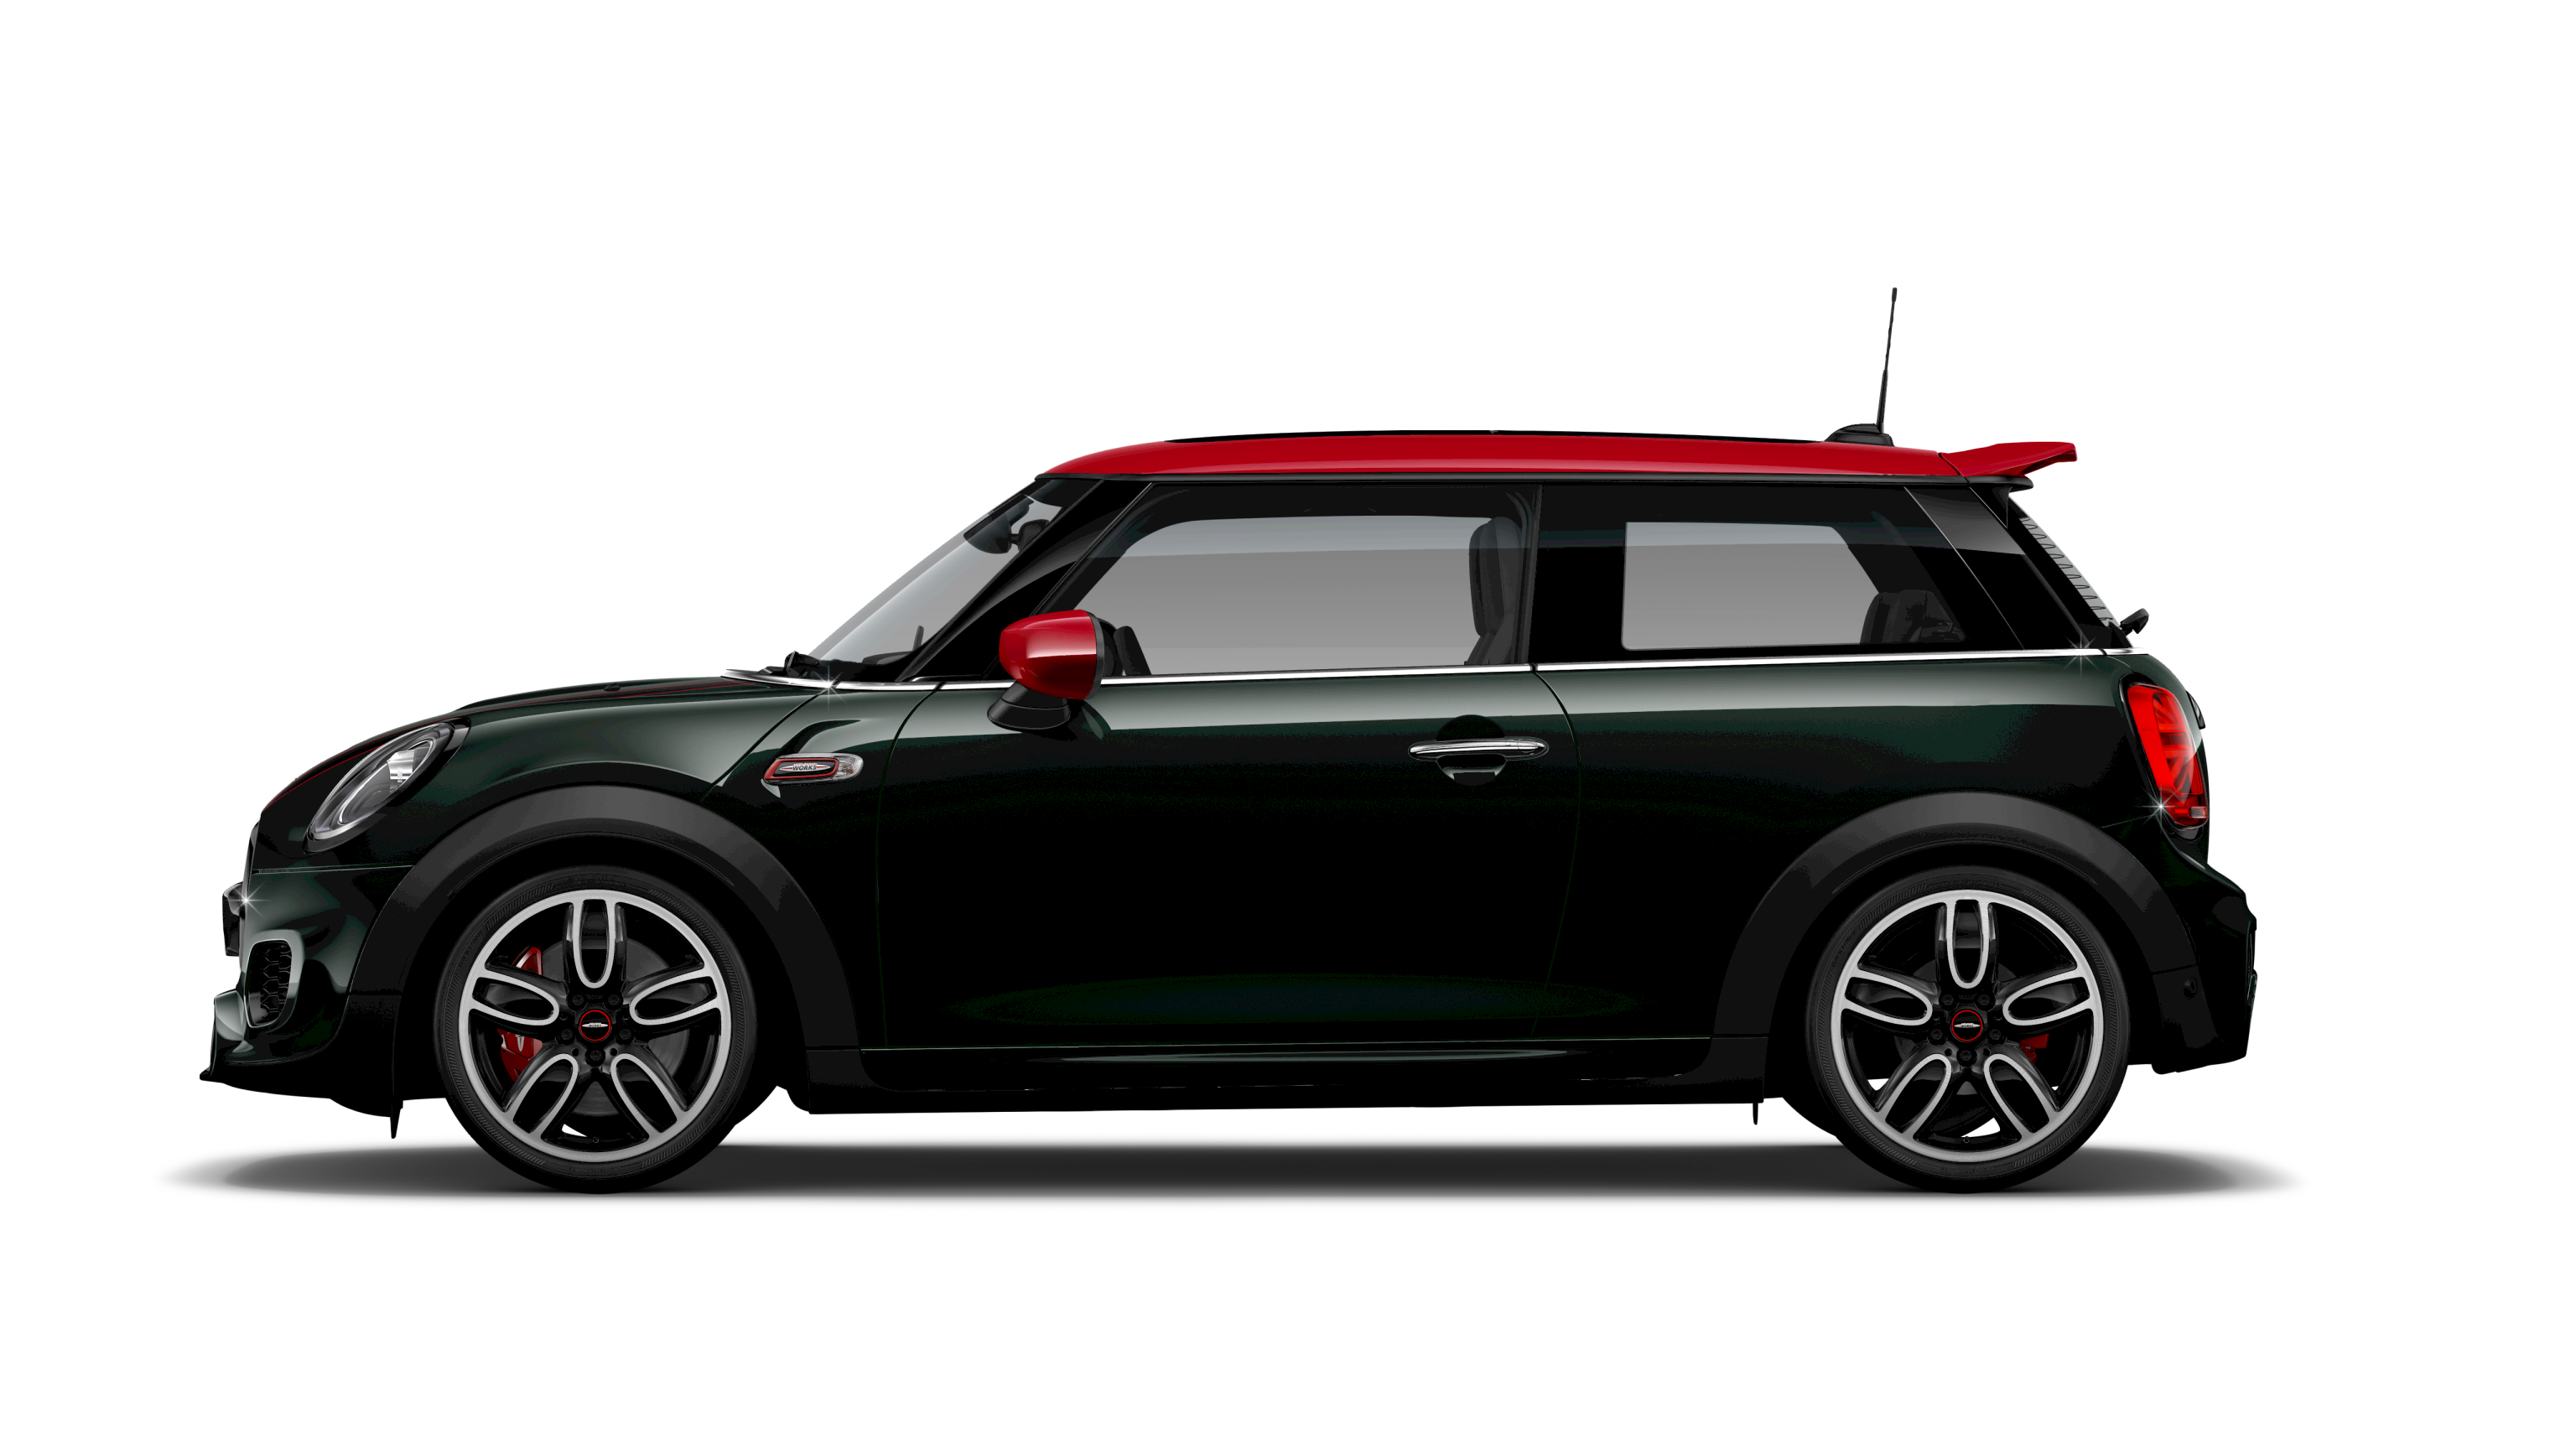 MINI JOHN COOPER WORKS HATCH SIDE VIEW